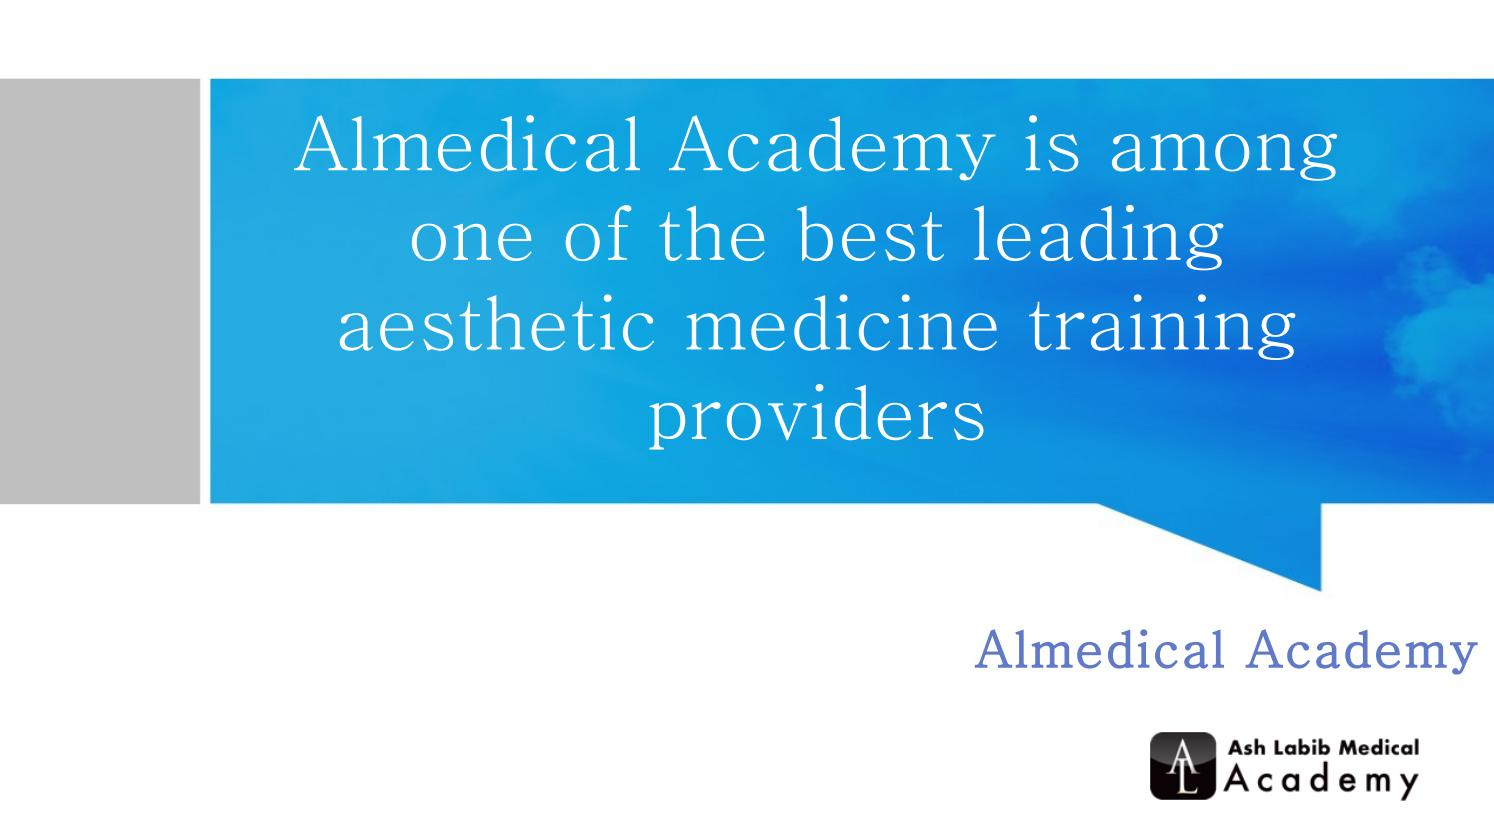 Almedical Academy is among one of the best leading aesthetic